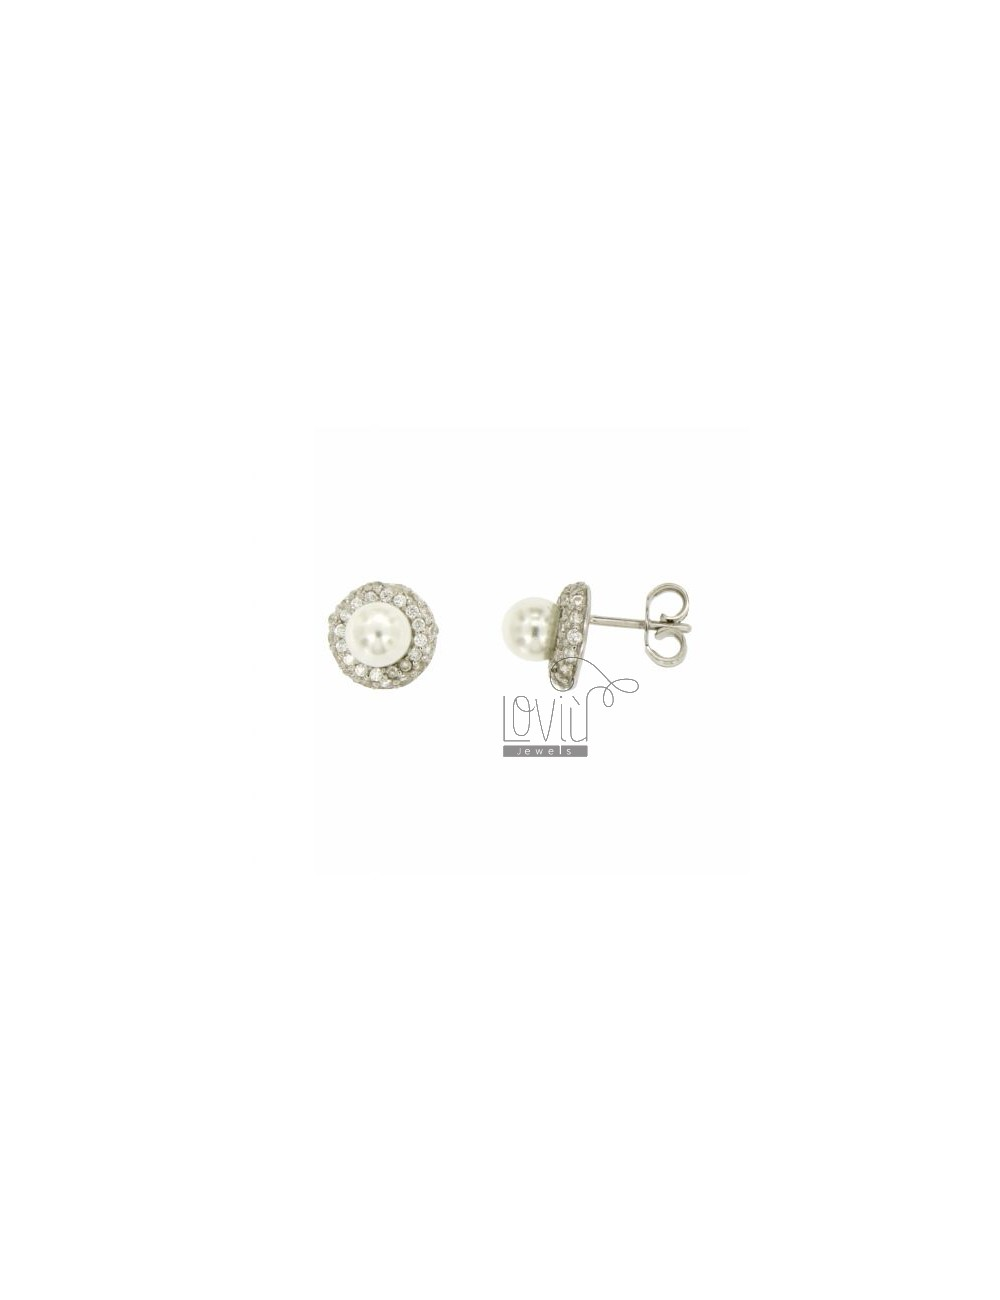 EARRINGS LOBO ROUND PEARL MM 6 SILVER TIT 925 ‰ AND ZIRCONIA